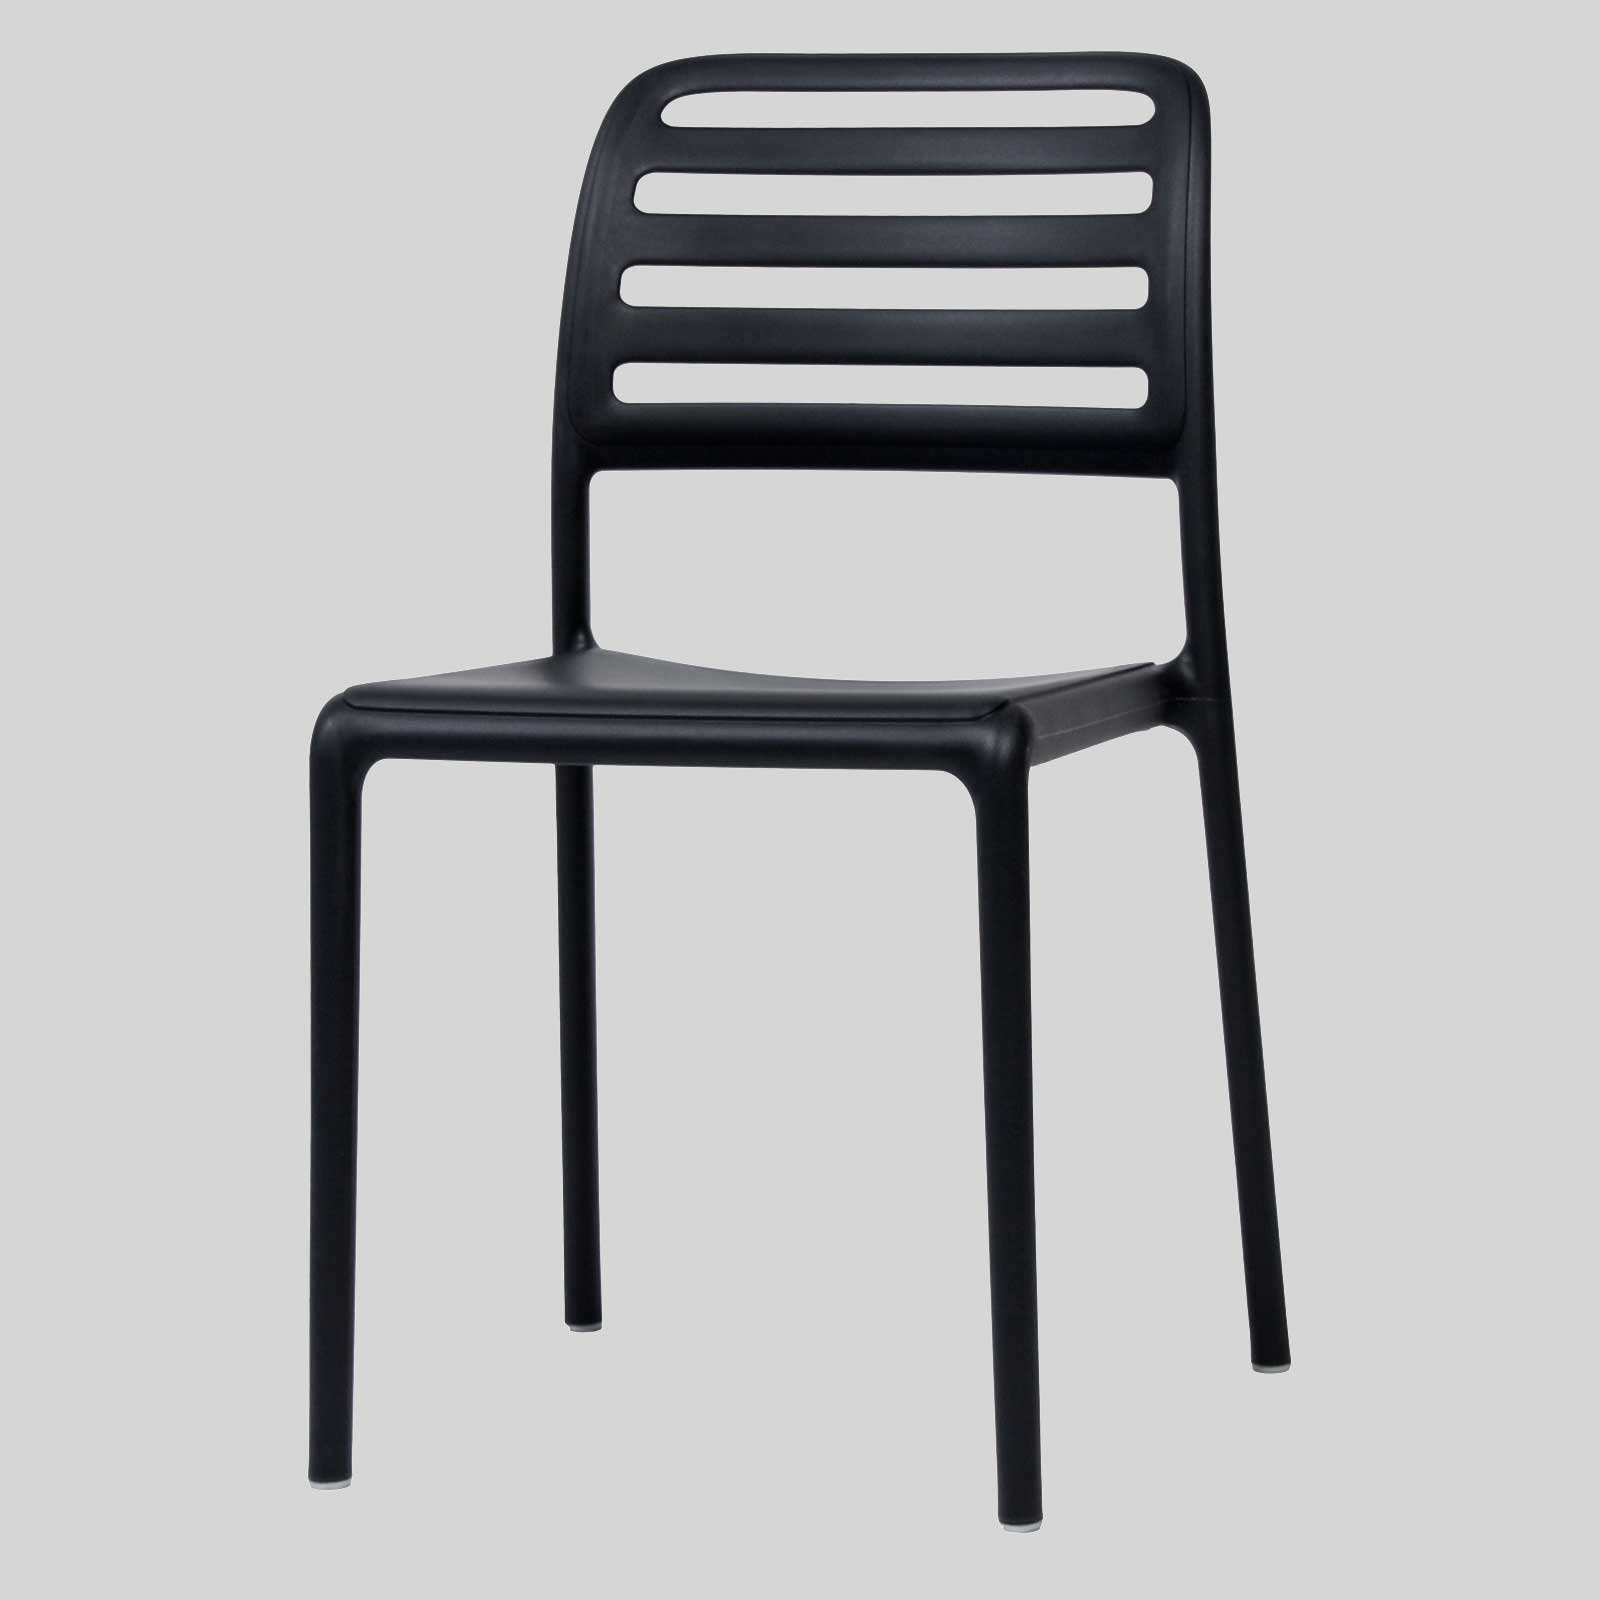 Outdoor Cafe Chairs Bosca